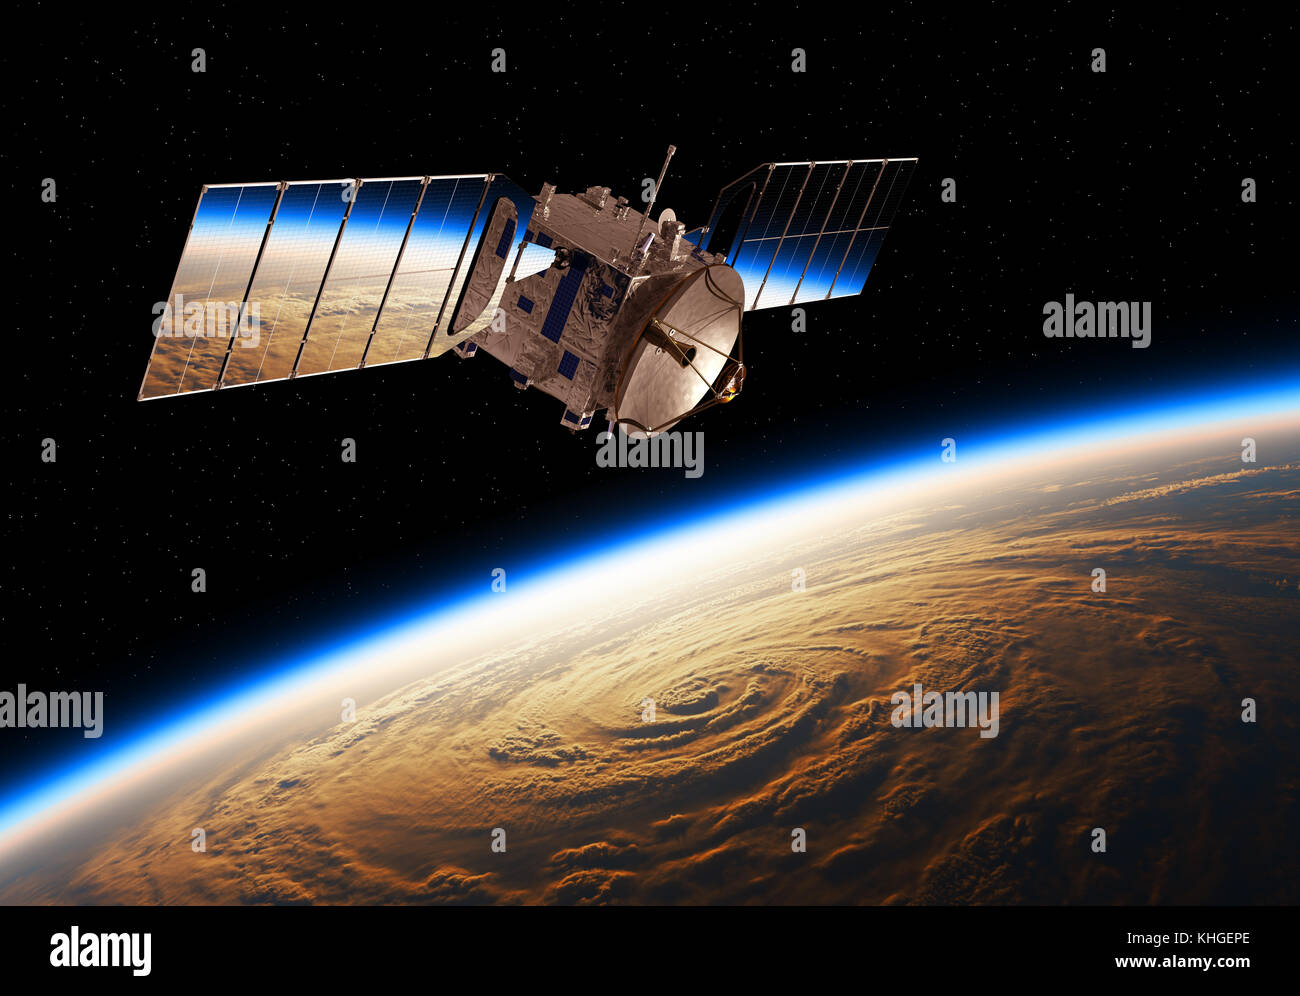 Reflection Of Planet Earth In Solar Panels Of A Space Satellite - Stock Image